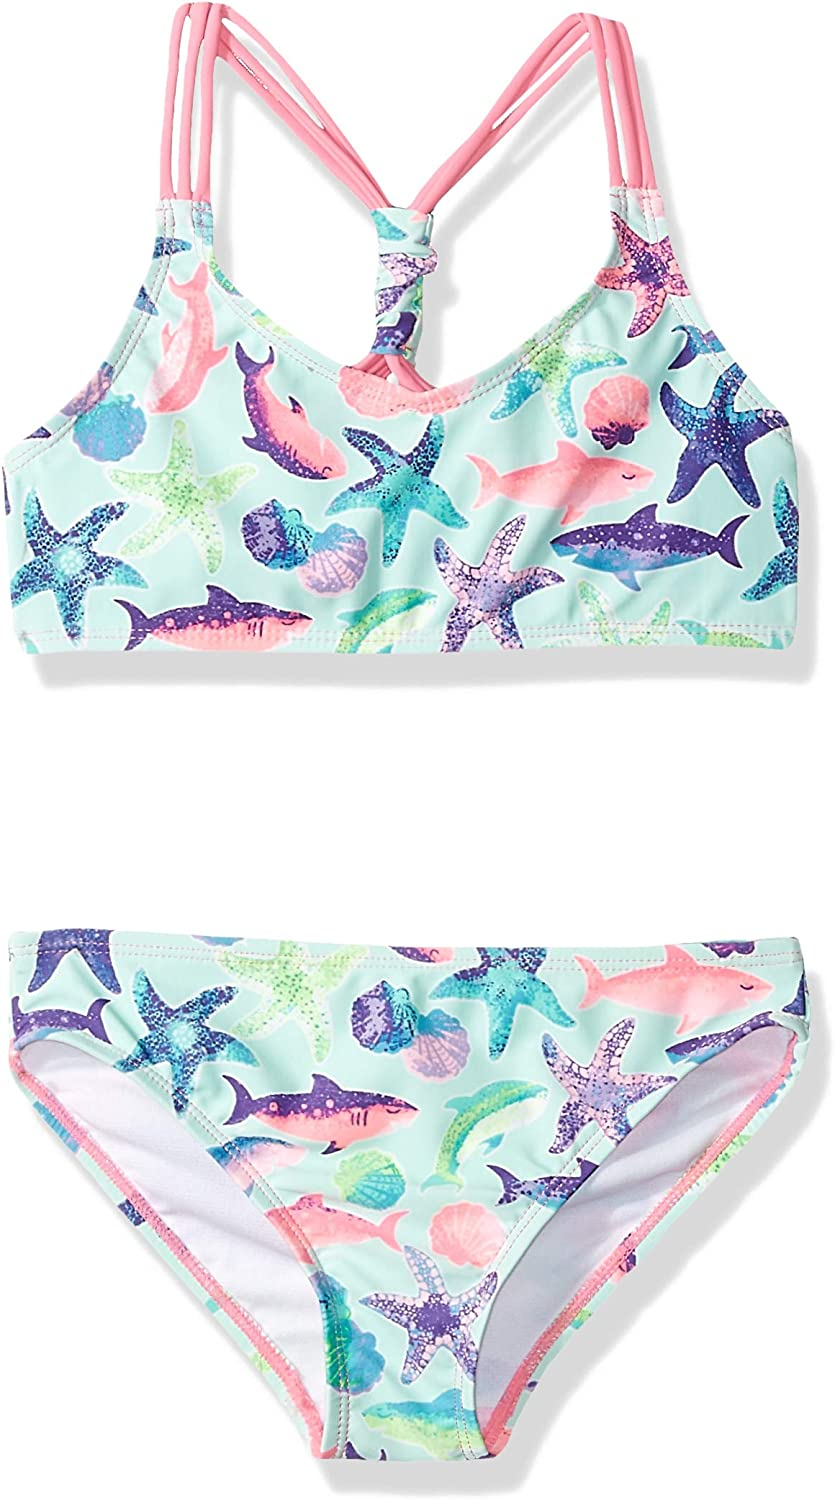 Rivstar Girls Big Bikini with Triple Strap Scrunch Top Sharkie Print 2pc